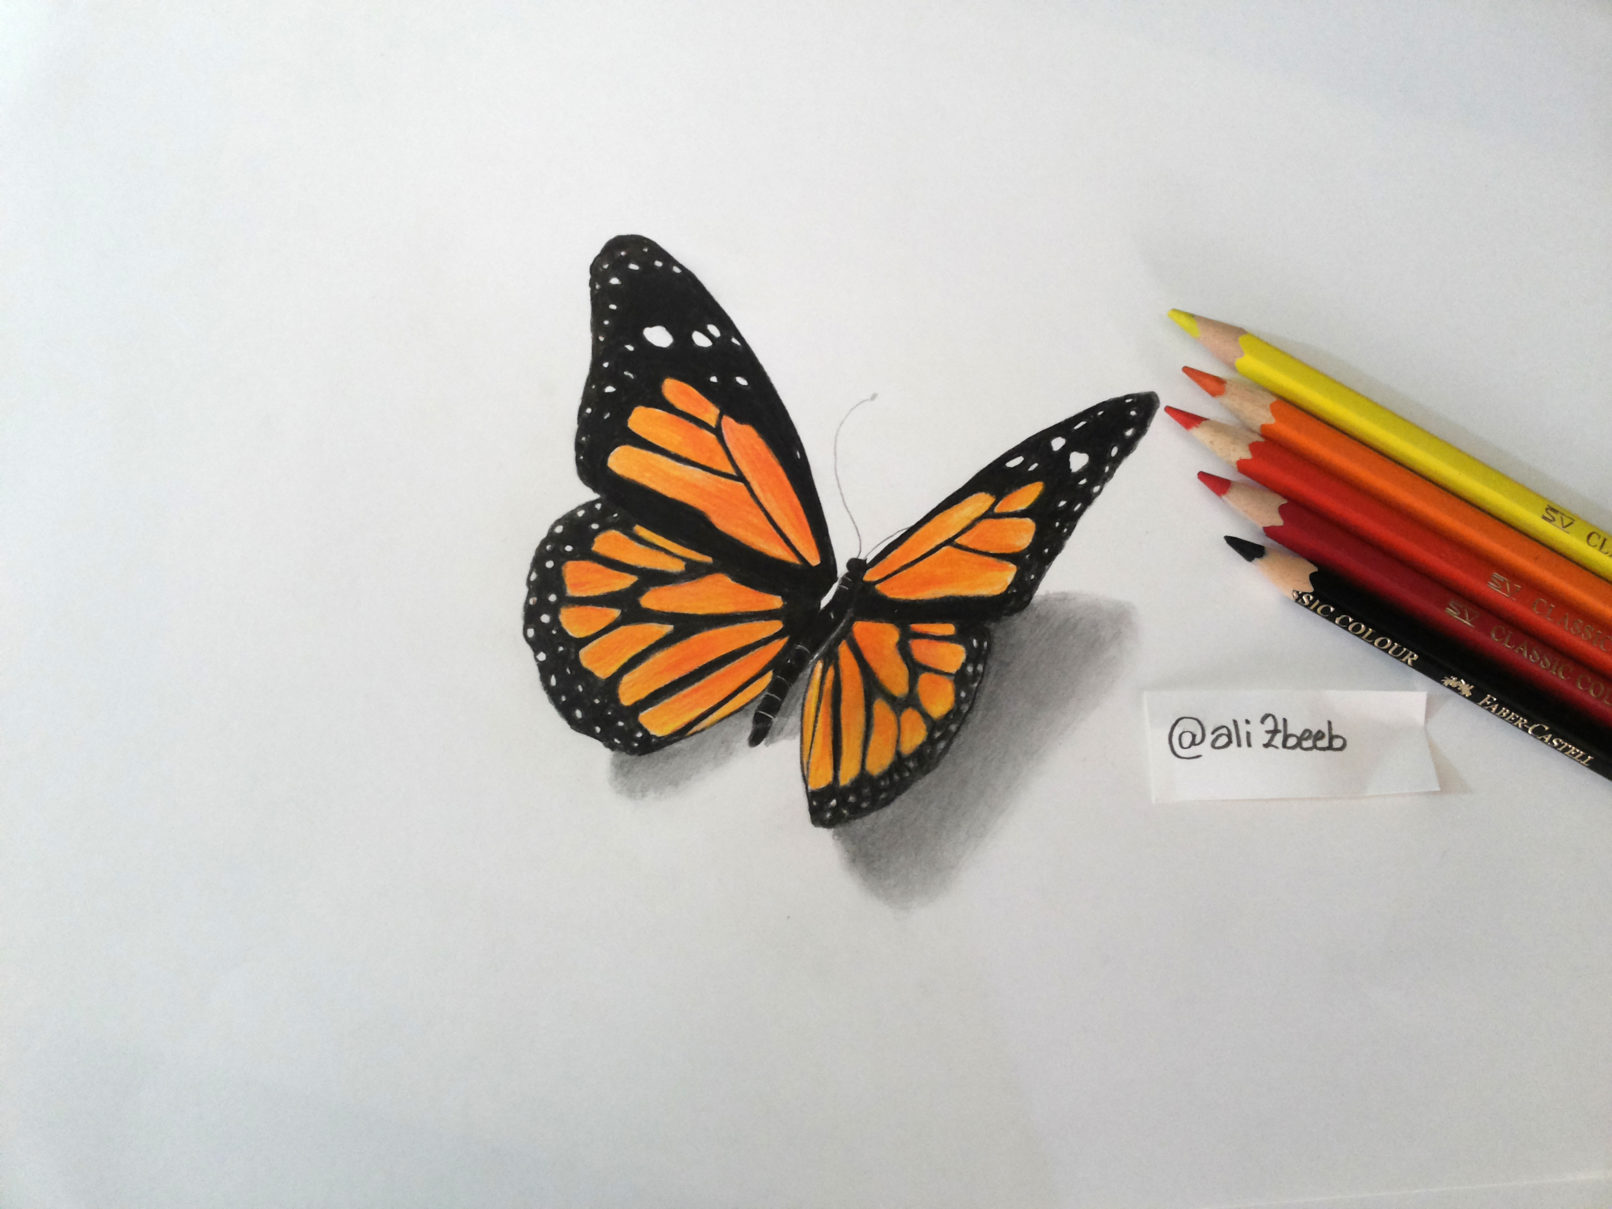 Butterfly - Colored pencils - Ali Zbib